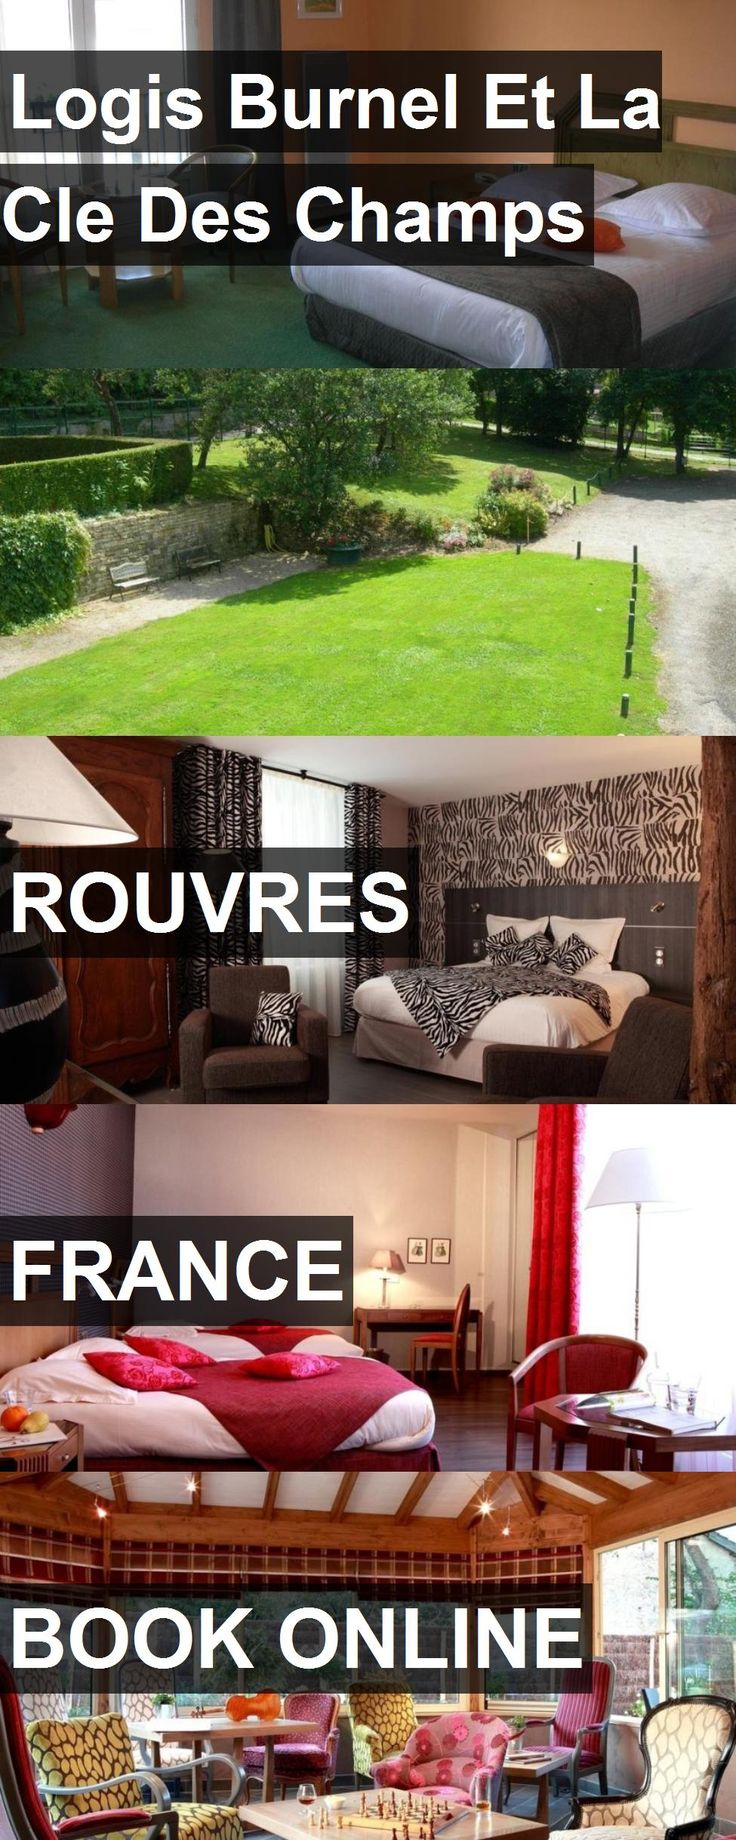 Hotel Logis Burnel Et La Cle Des Champs in Rouvres, France. For more information, photos, reviews and best prices please follow the link. #France #Rouvres #LogisBurnelEtLaCleDesChamps #hotel #travel #vacation